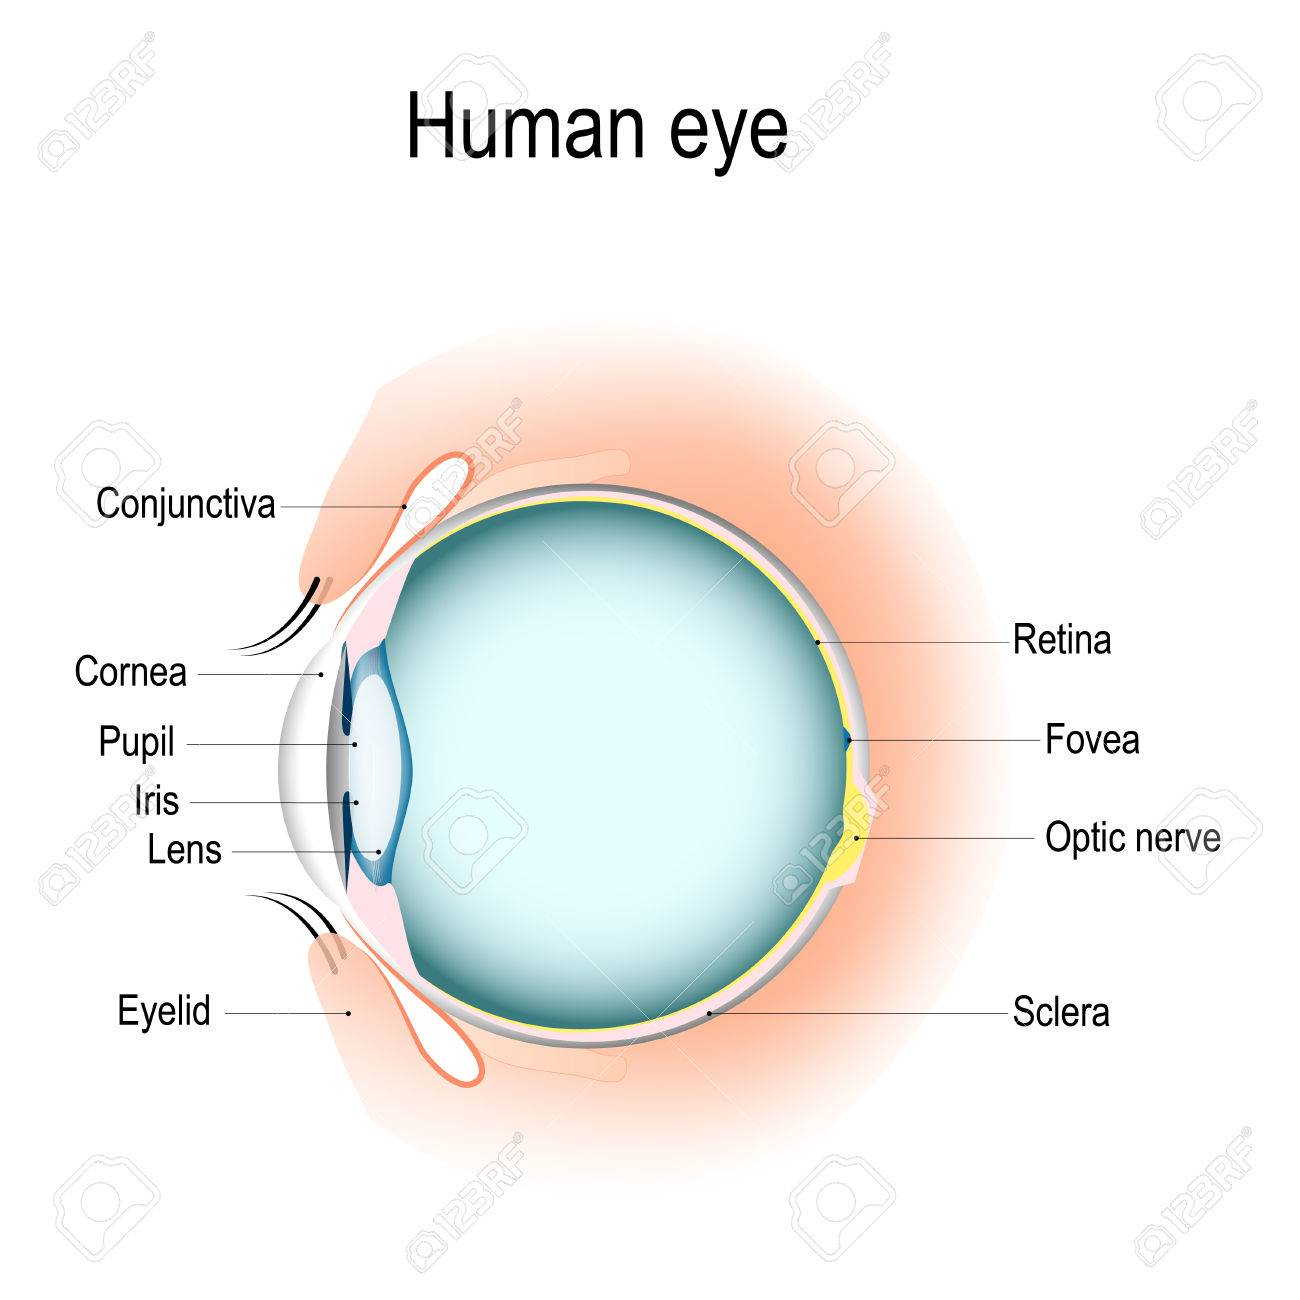 Anatomy of the human eye vertical section of the eye and eyelids anatomy of the human eye vertical section of the eye and eyelids schematic diagram ccuart Image collections